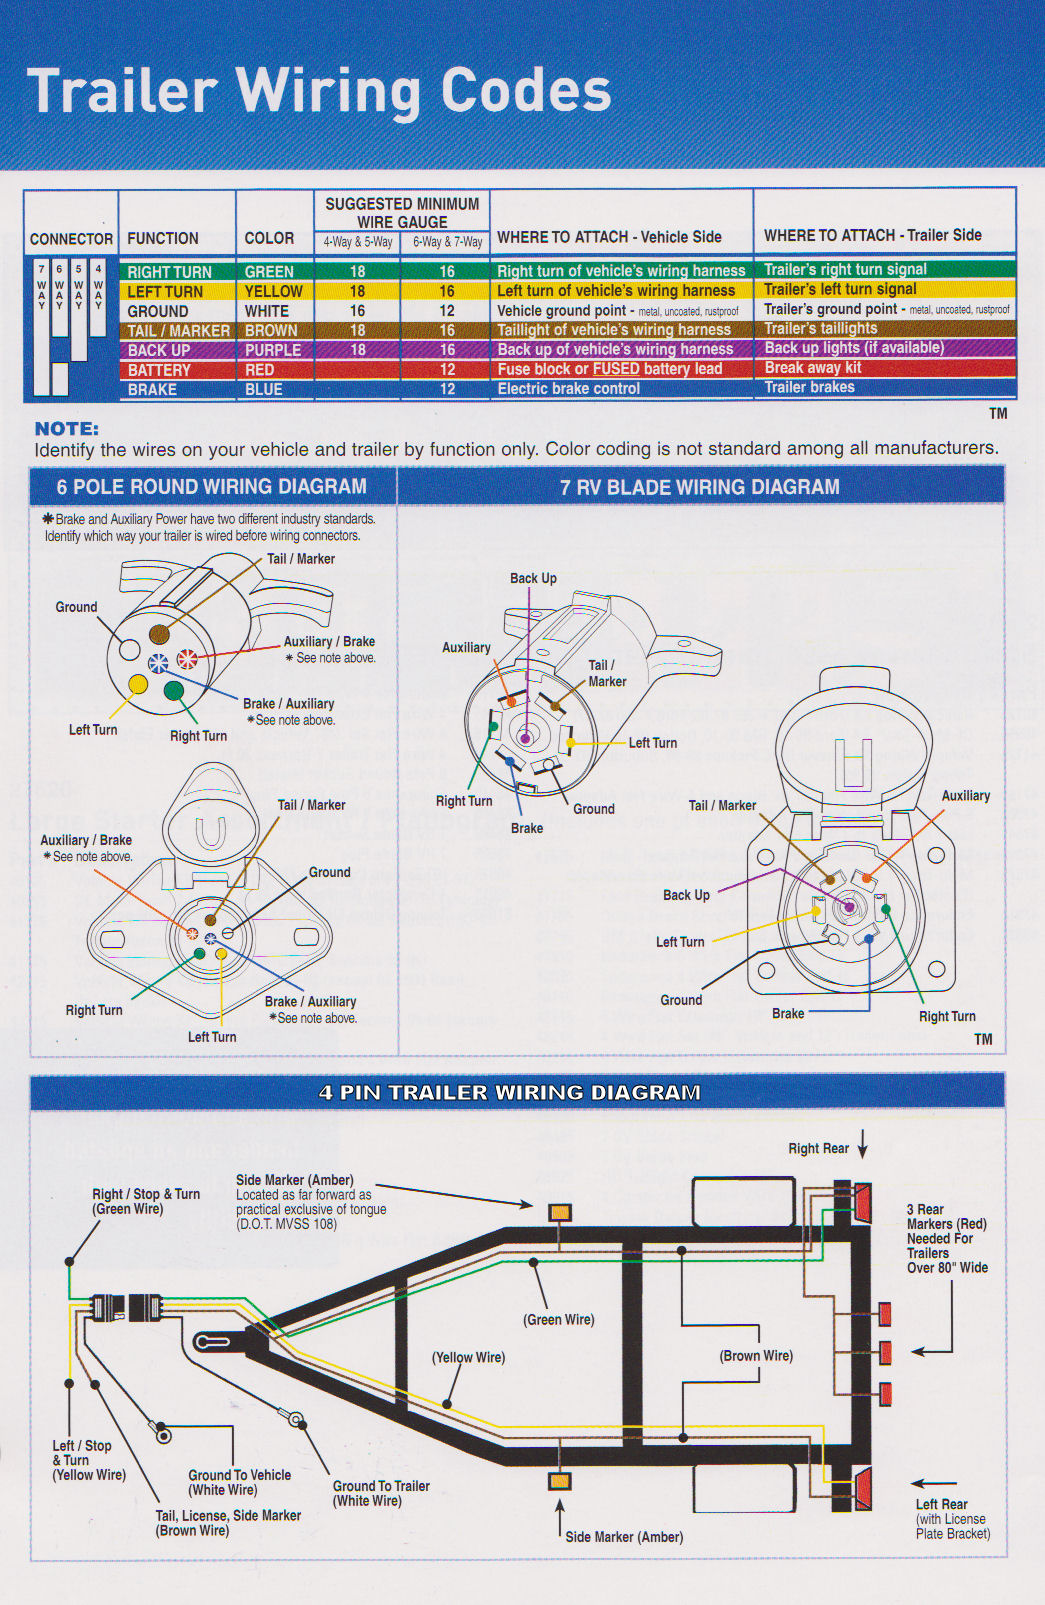 Enjoyable Cargo Trailer Wiring Diagram Wiring Diagram B2 Wiring Cloud Oideiuggs Outletorg